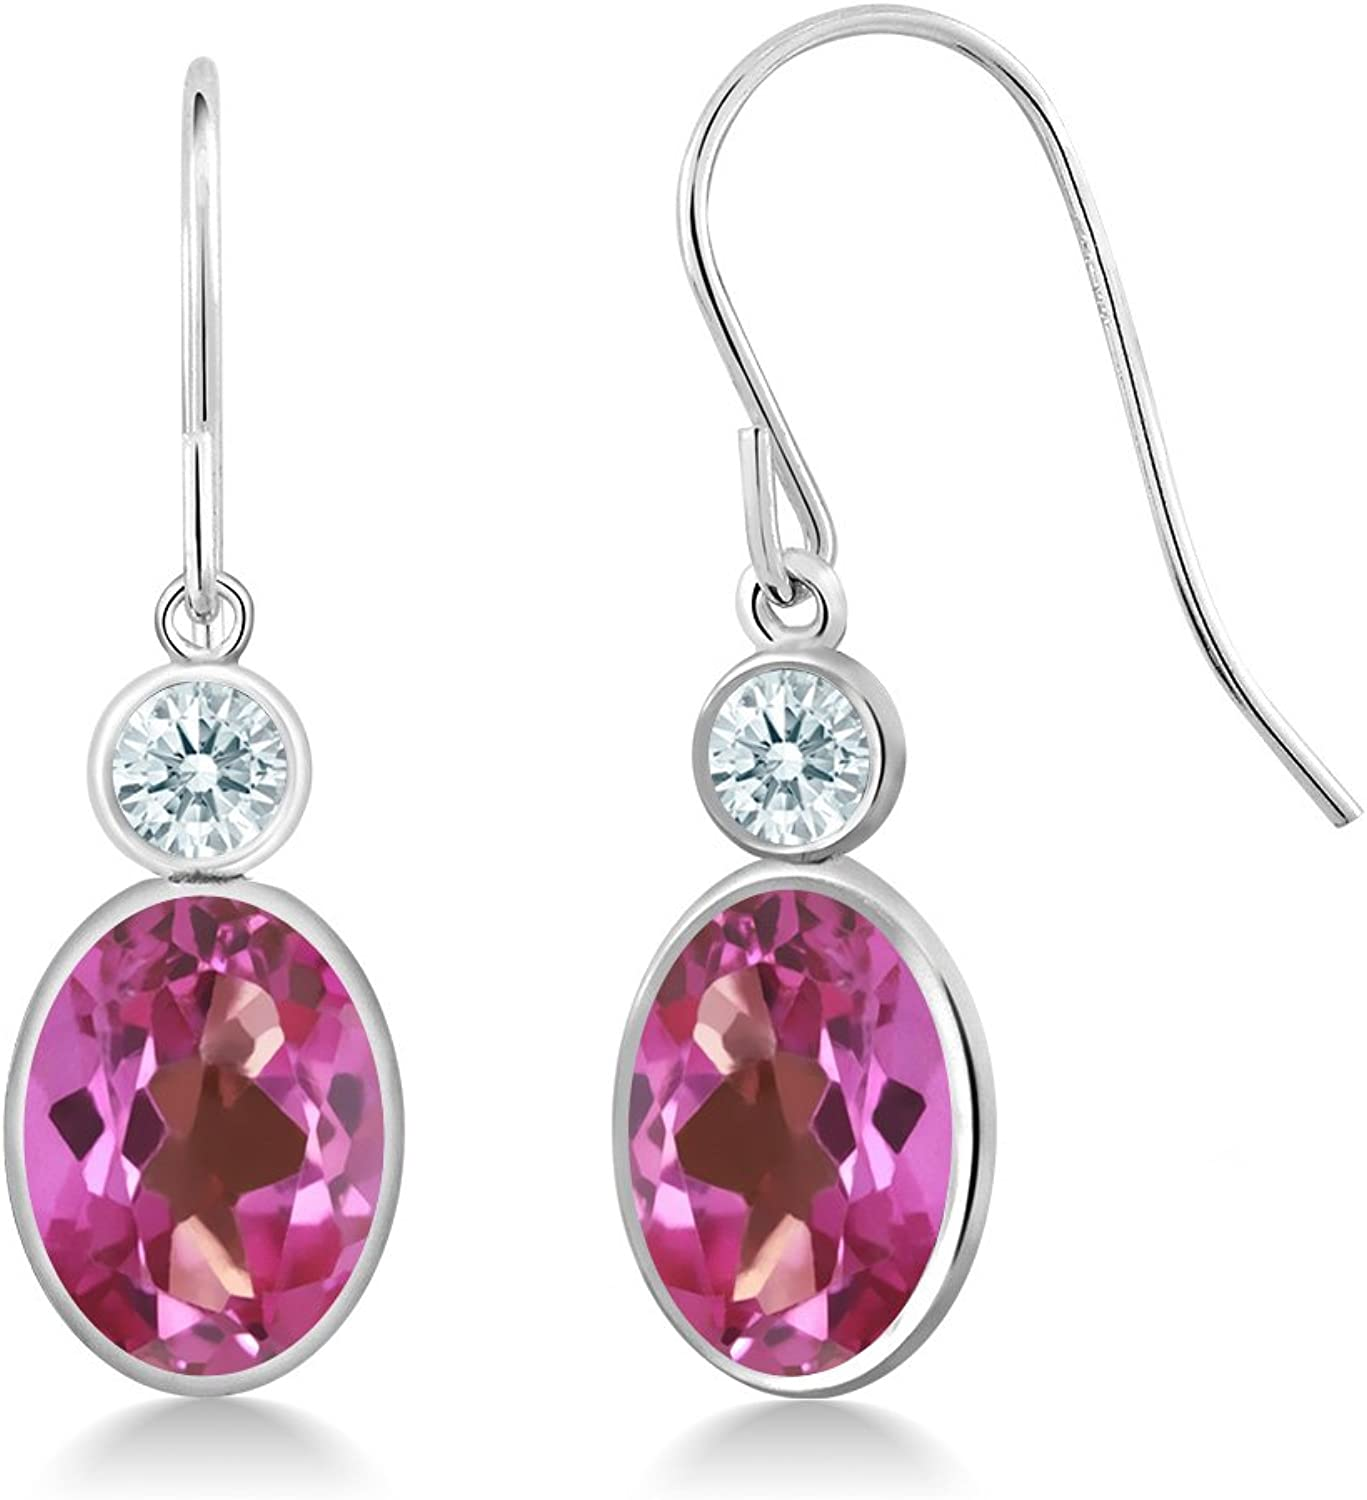 2.82 Ct Pink 14K White gold Earrings Made With Swarovski Zirconia